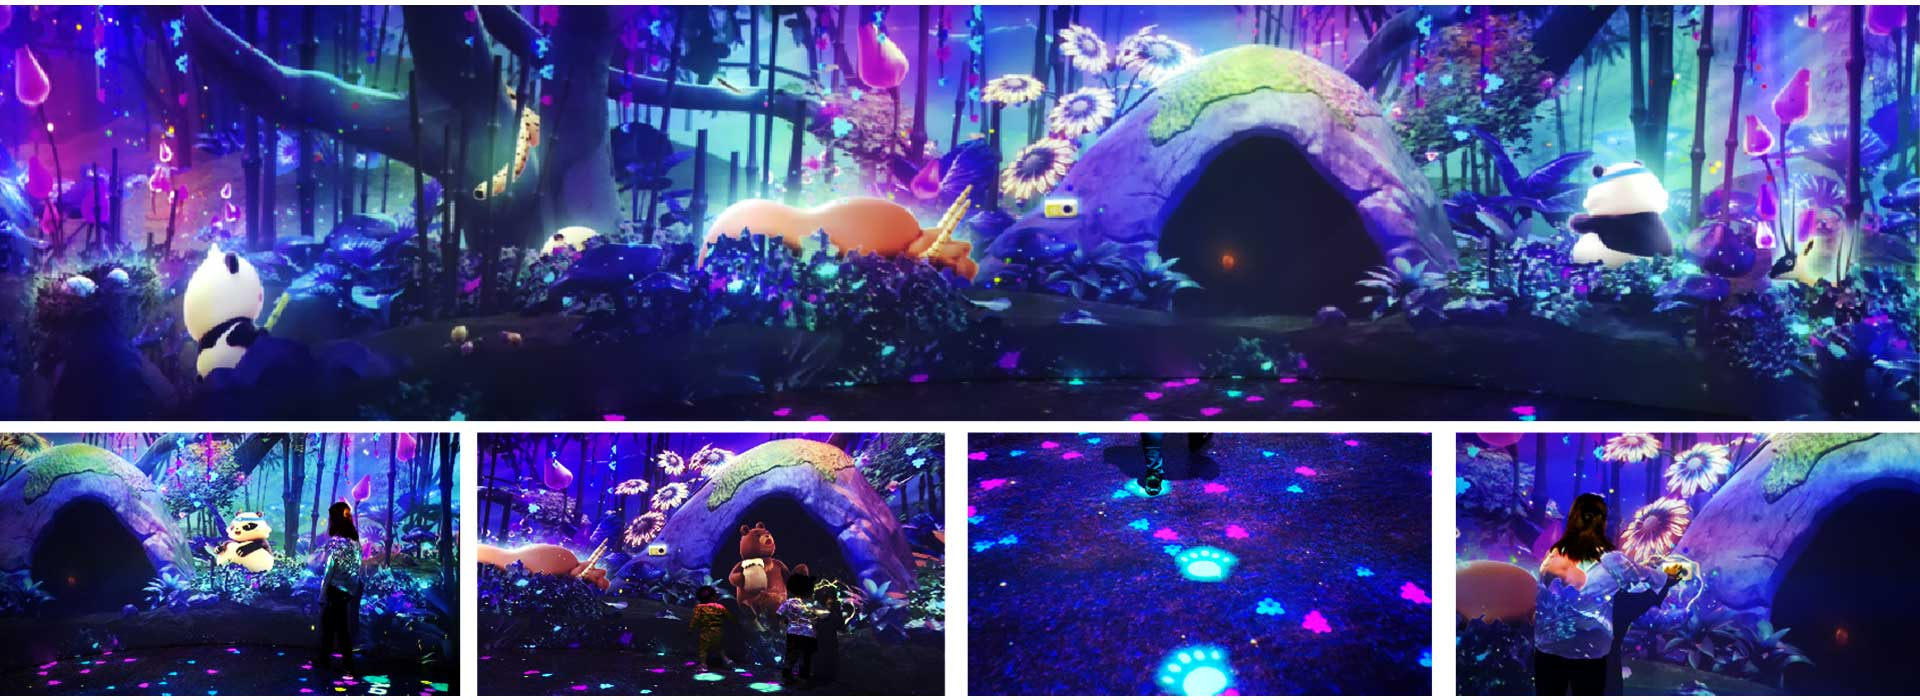 3D-Animation-PandaHouse-Forest-Collage